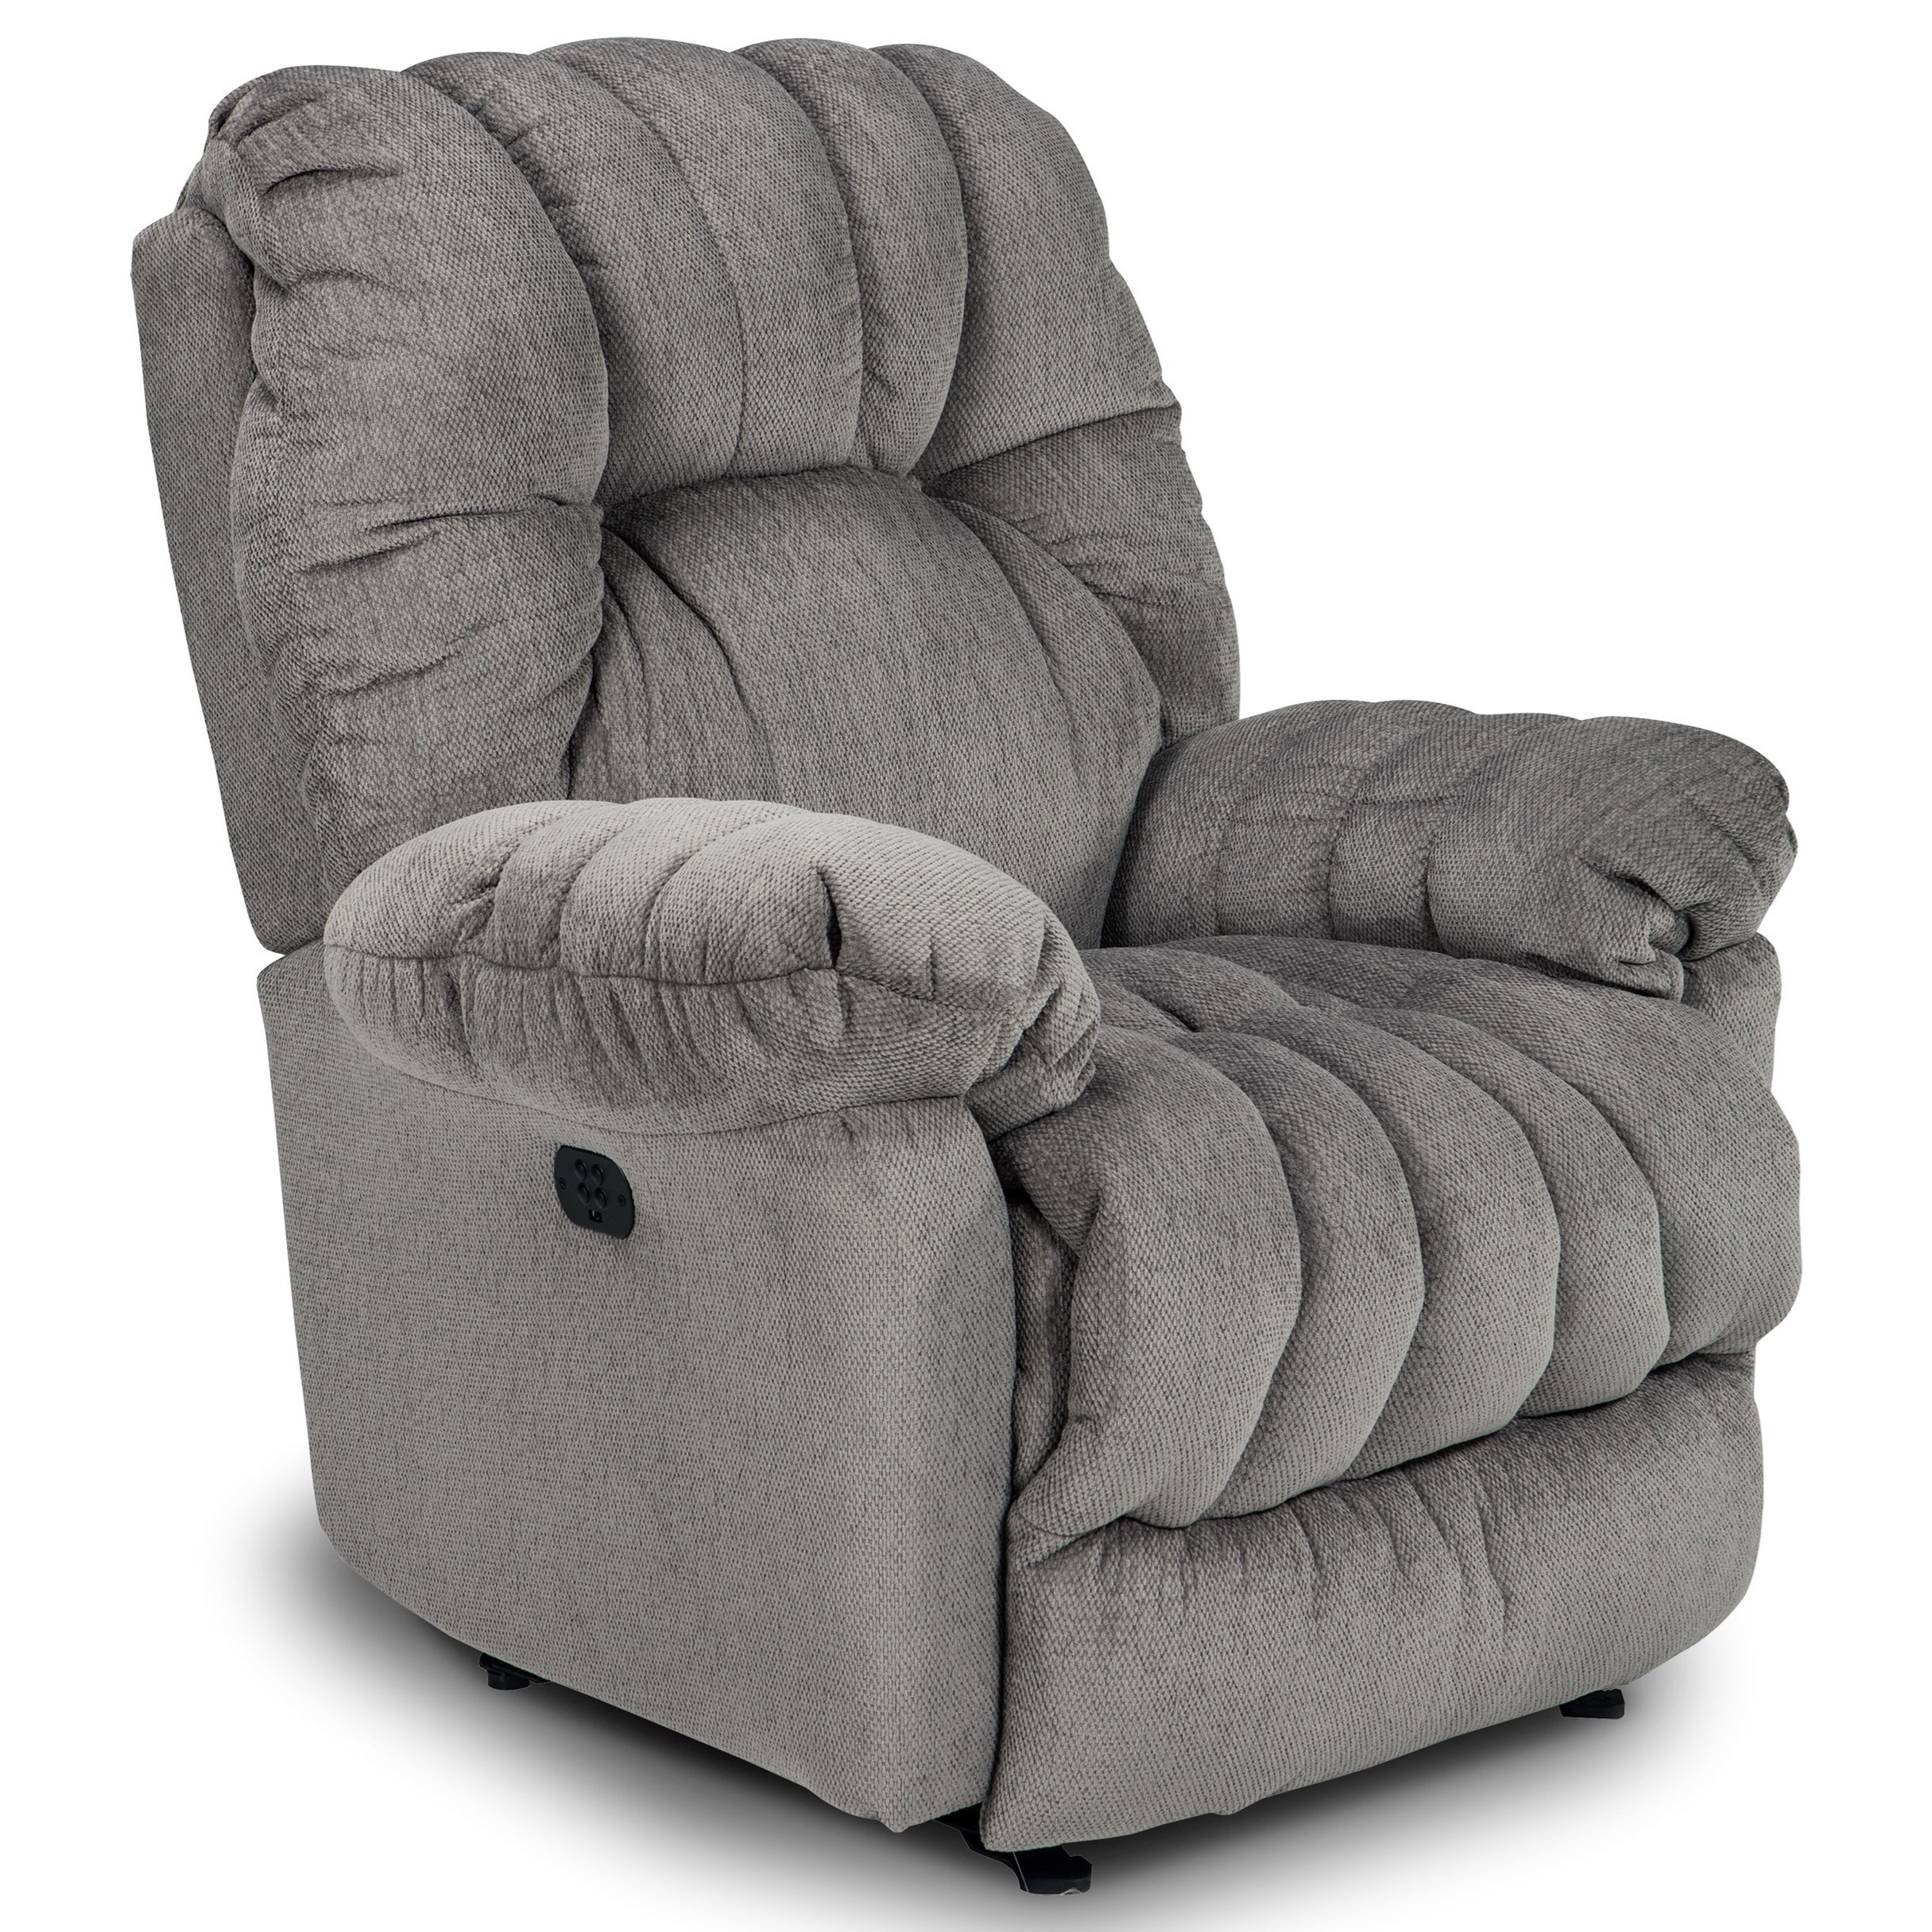 Reclining Rocking Chair Best Home Furnishings Medium Recliners Conen Swivel